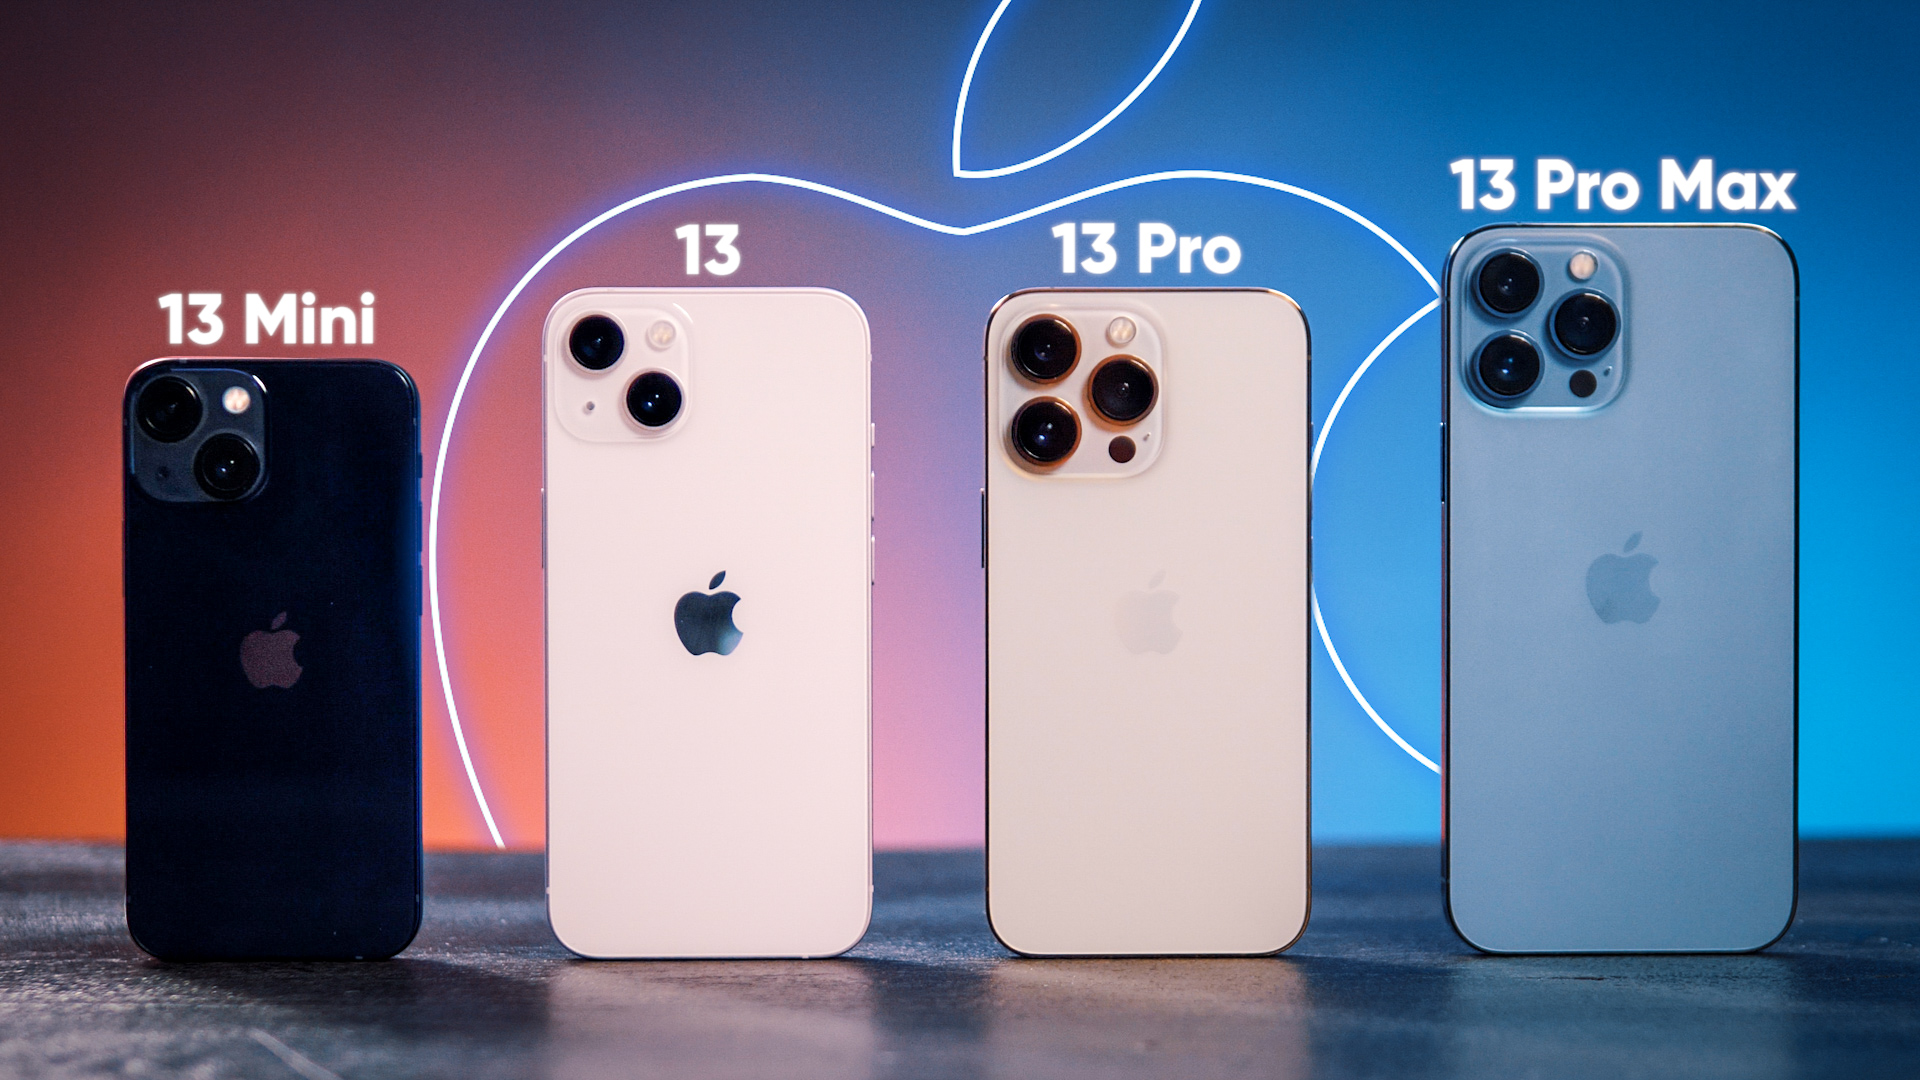 On a reçu TOUS LES iPHONE 13 (iPhone 13, iPhone 13 Mini, iPhone 13 Pro, iPhone 13 Pro Max)